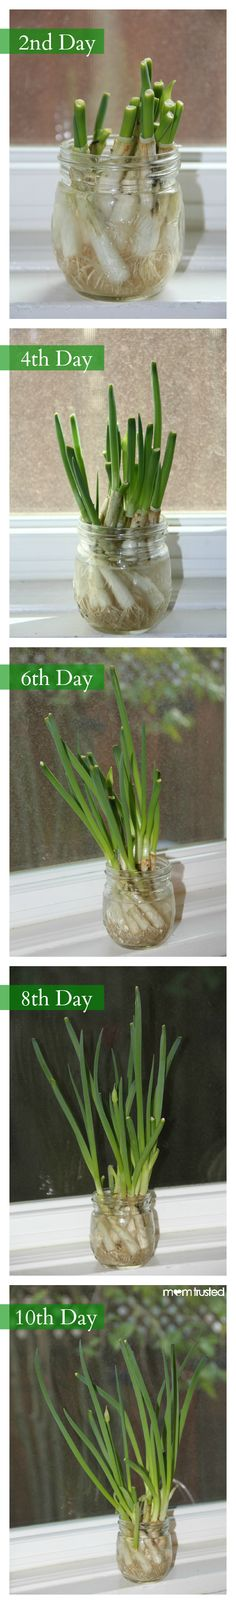 Grow green onions in only 10 days!